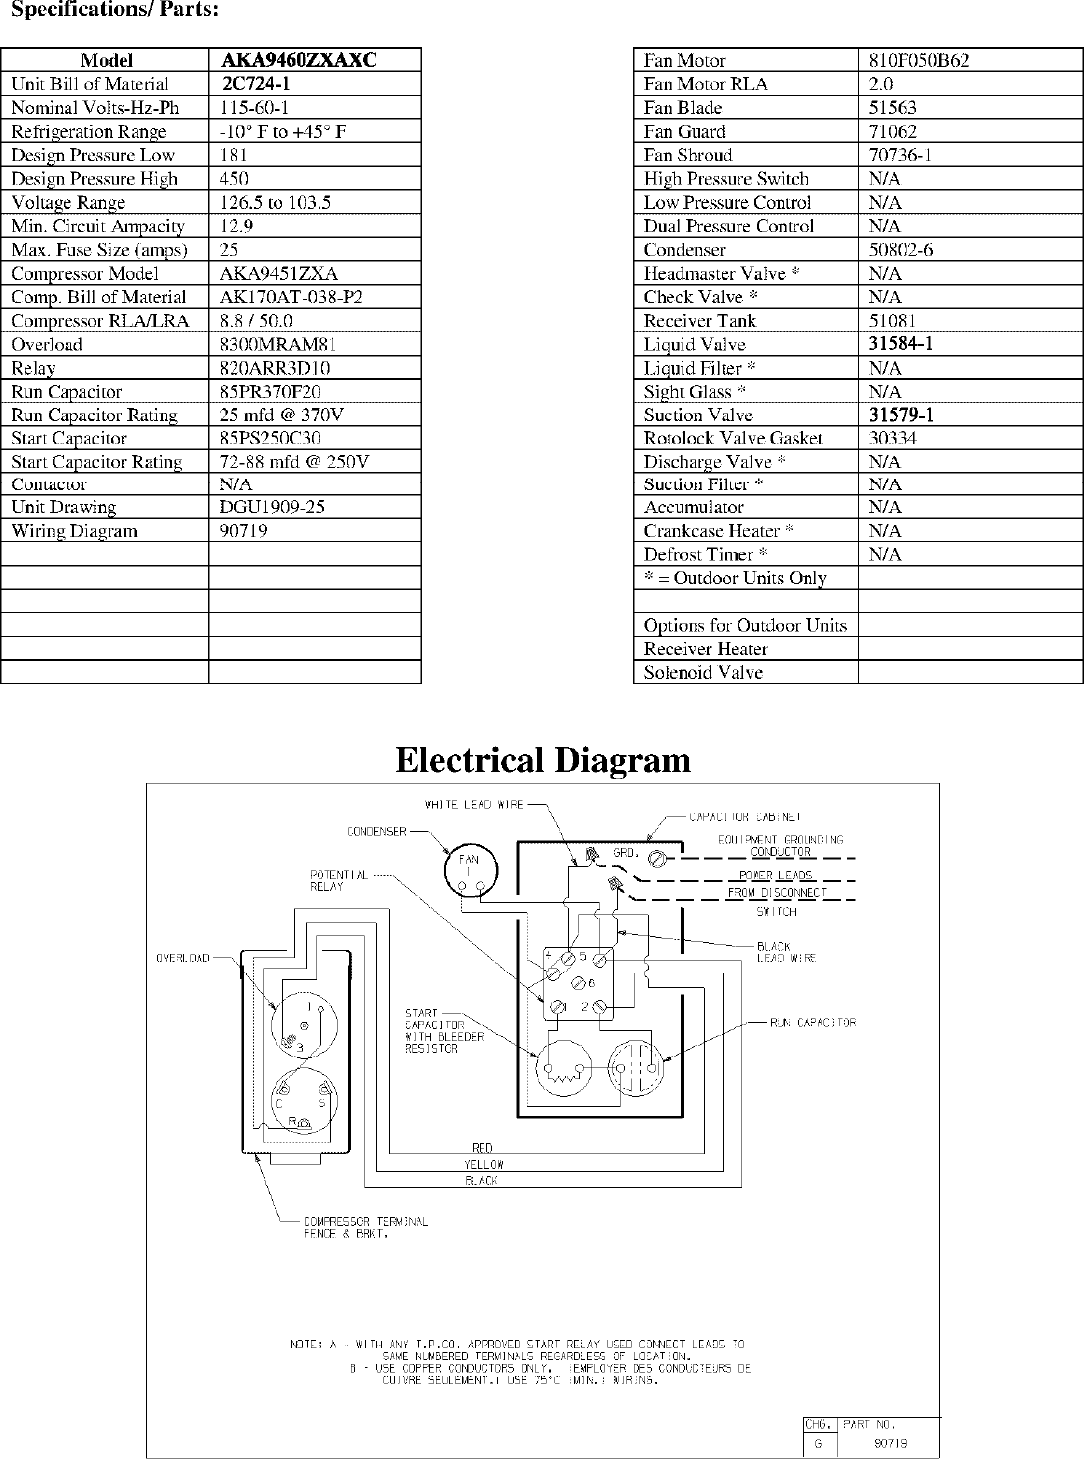 Tecumseh Aka9460zxaxc Performance Data Sheet Tech Condenser Wiring Diagram Page 2 Of